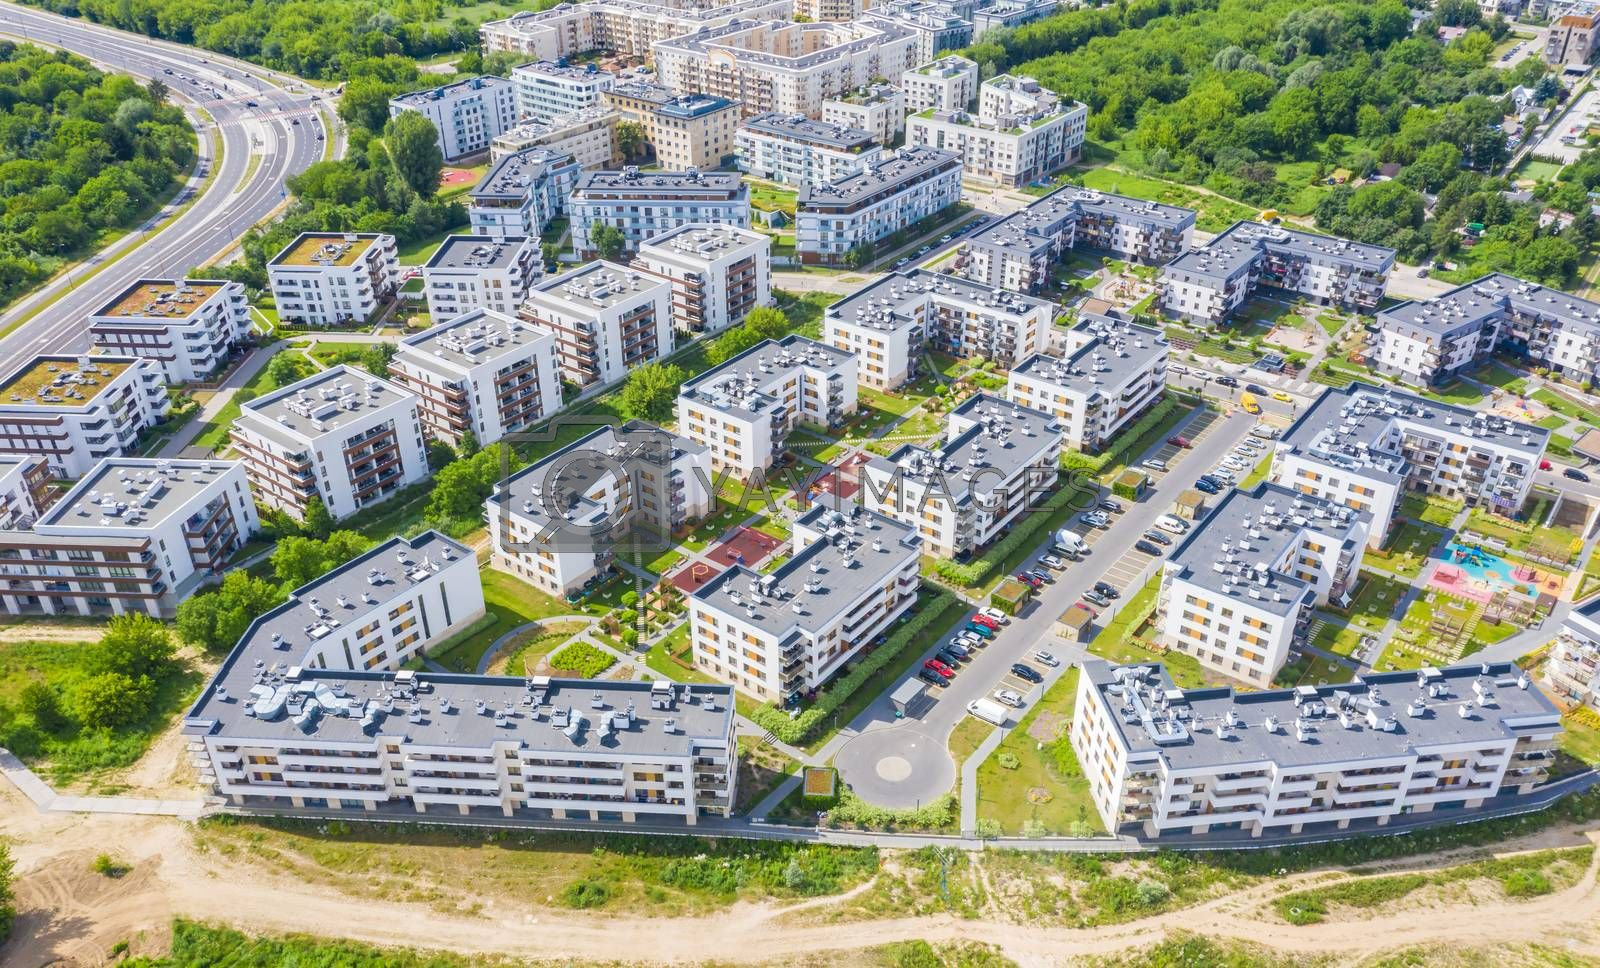 Aerial view of the residential area of the city